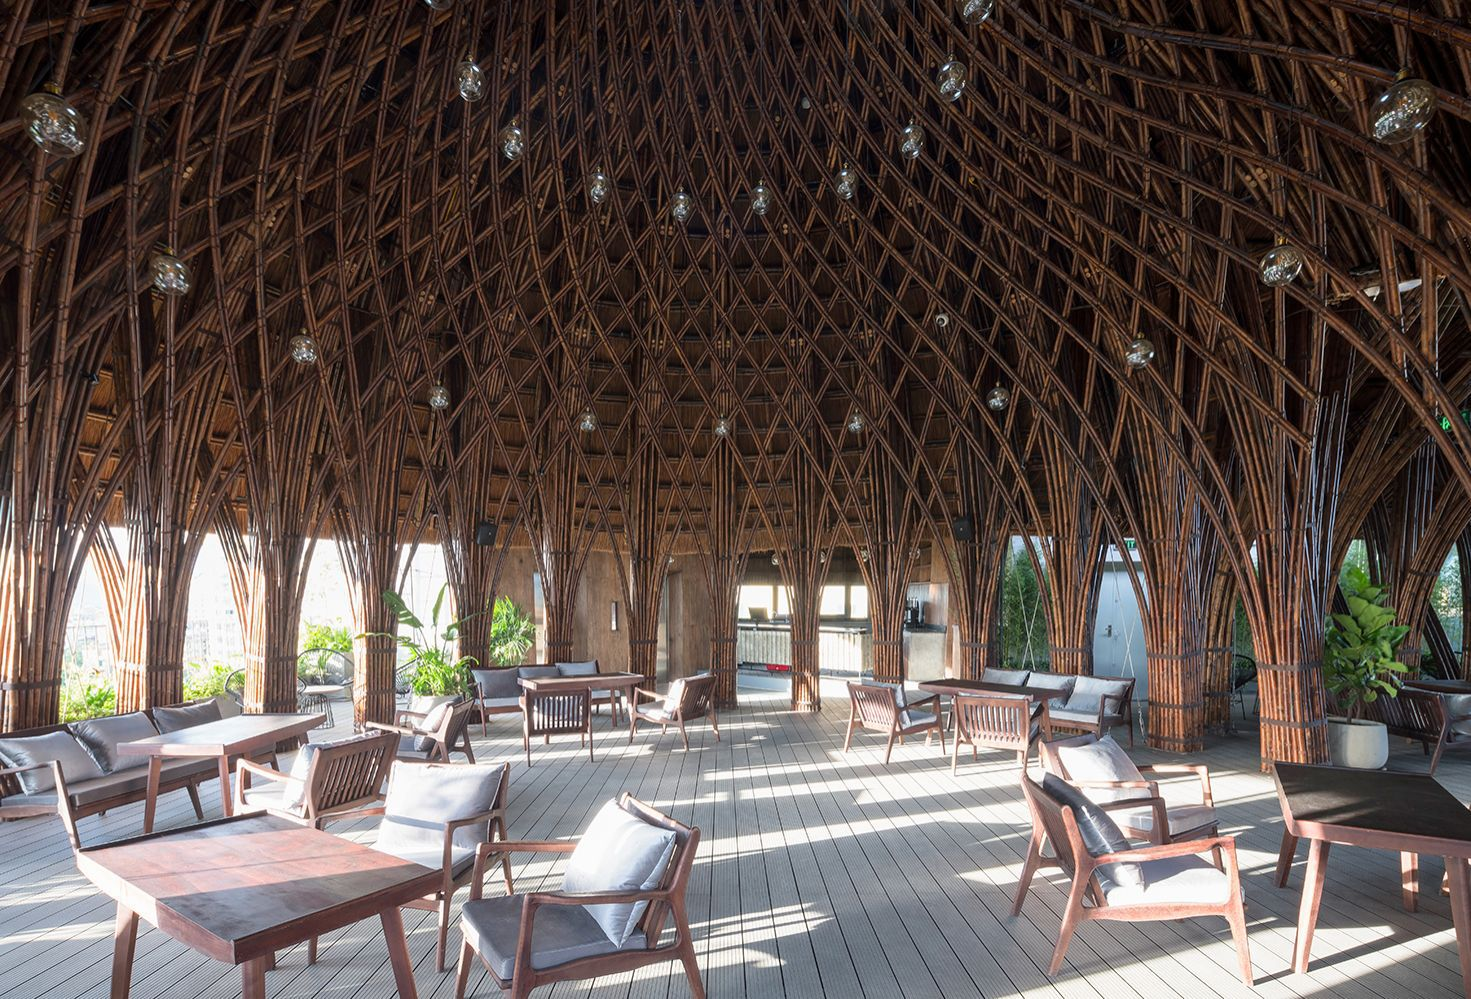 Interior Design Of The Year: Nocenco Cafe by Vo Trong Nghia Co